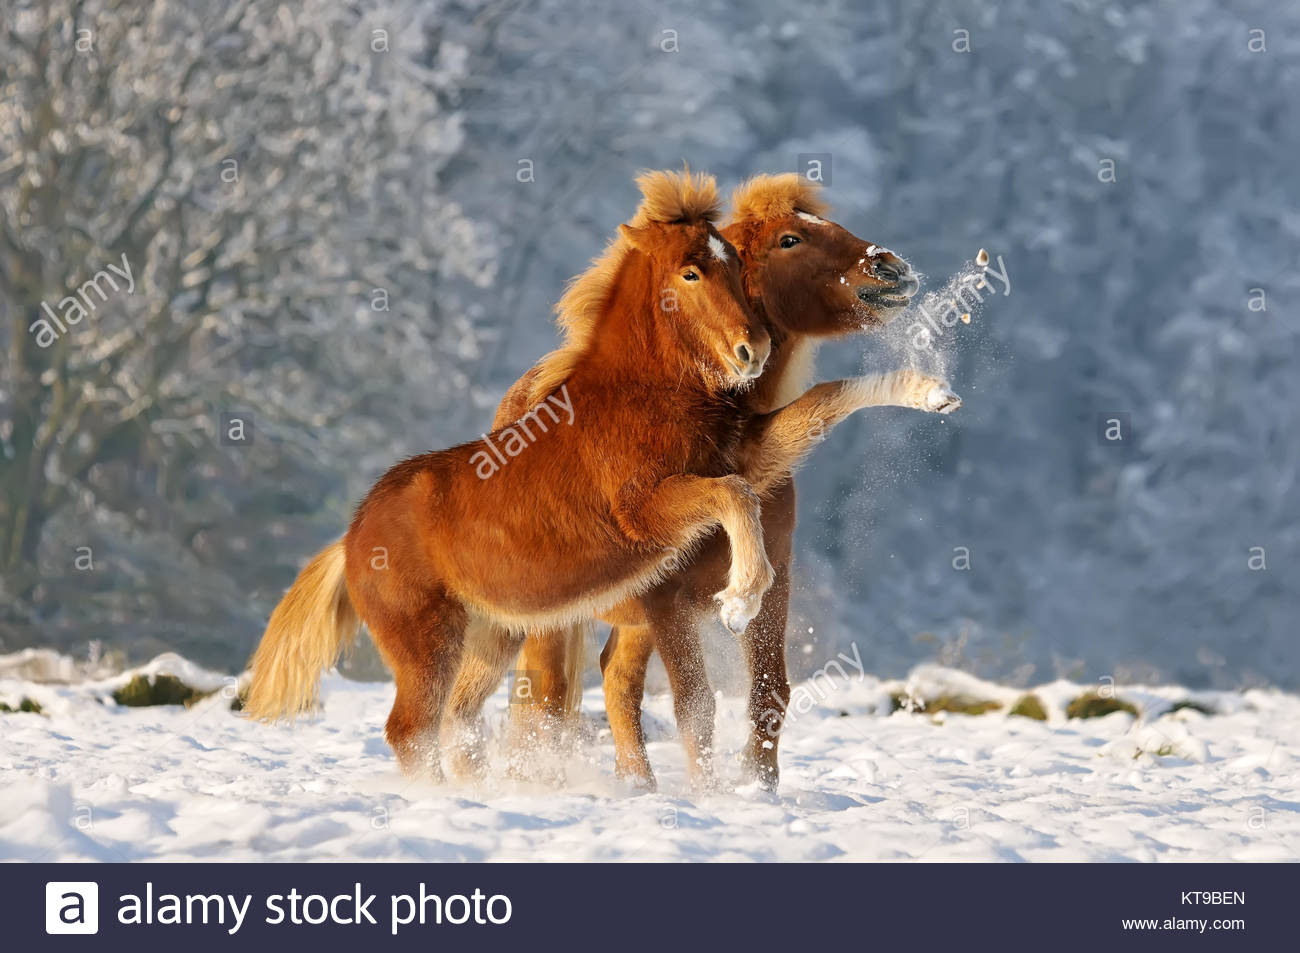 Two Icelandic horses, a foal and its mommy playing snowball fight in a snowy winter landscape, Germany - Stock Image